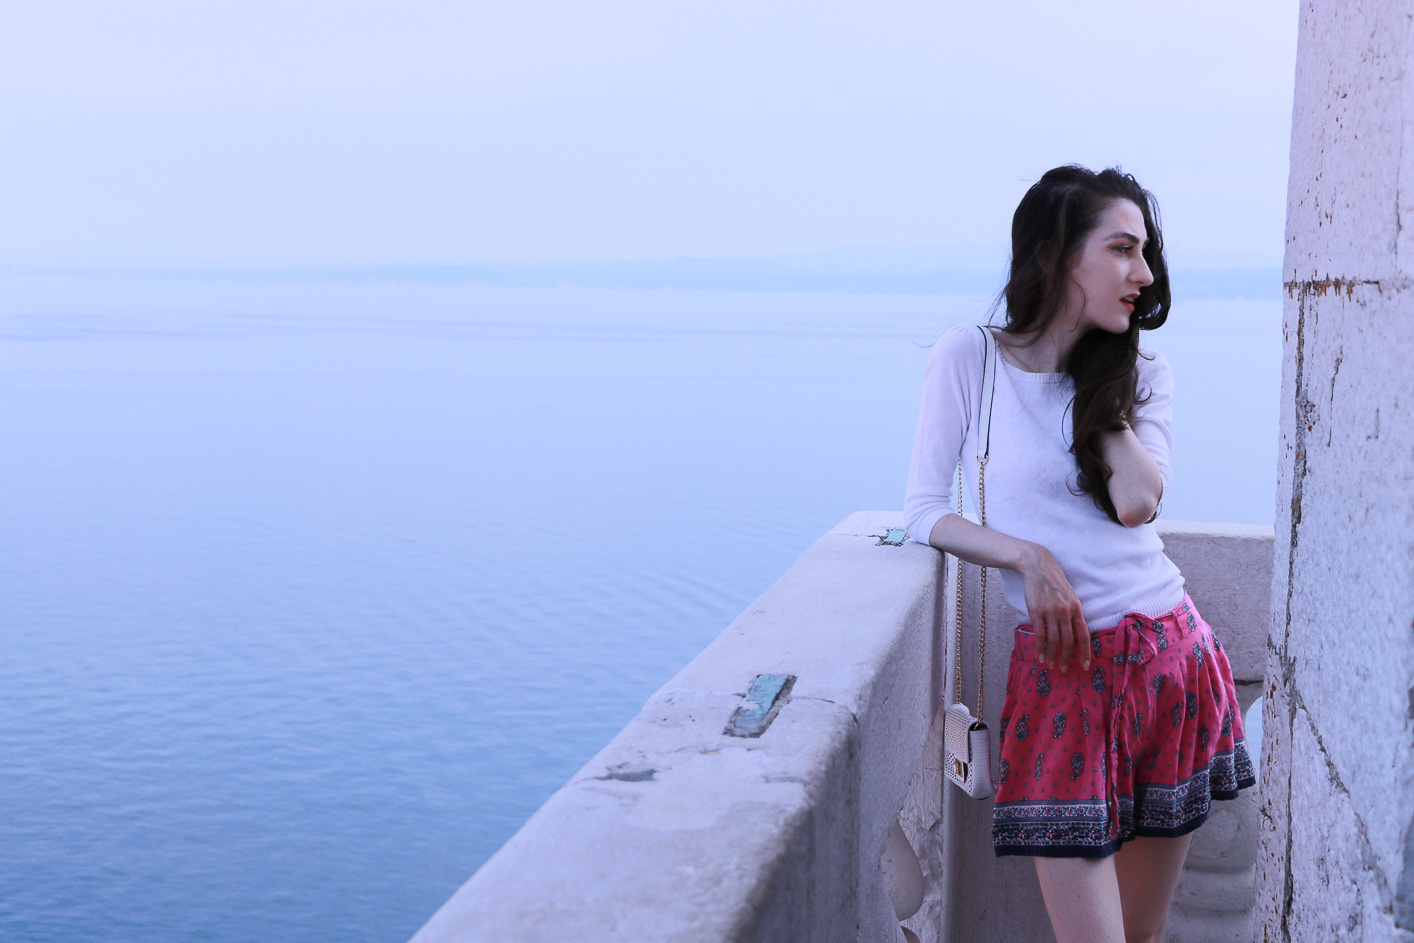 Fashion blogger Veronika Lipar of Brunette From Wall Street above the old Mediterranean seaside town dressed in silk shorts, pale pink sneakers and white shoulder bag